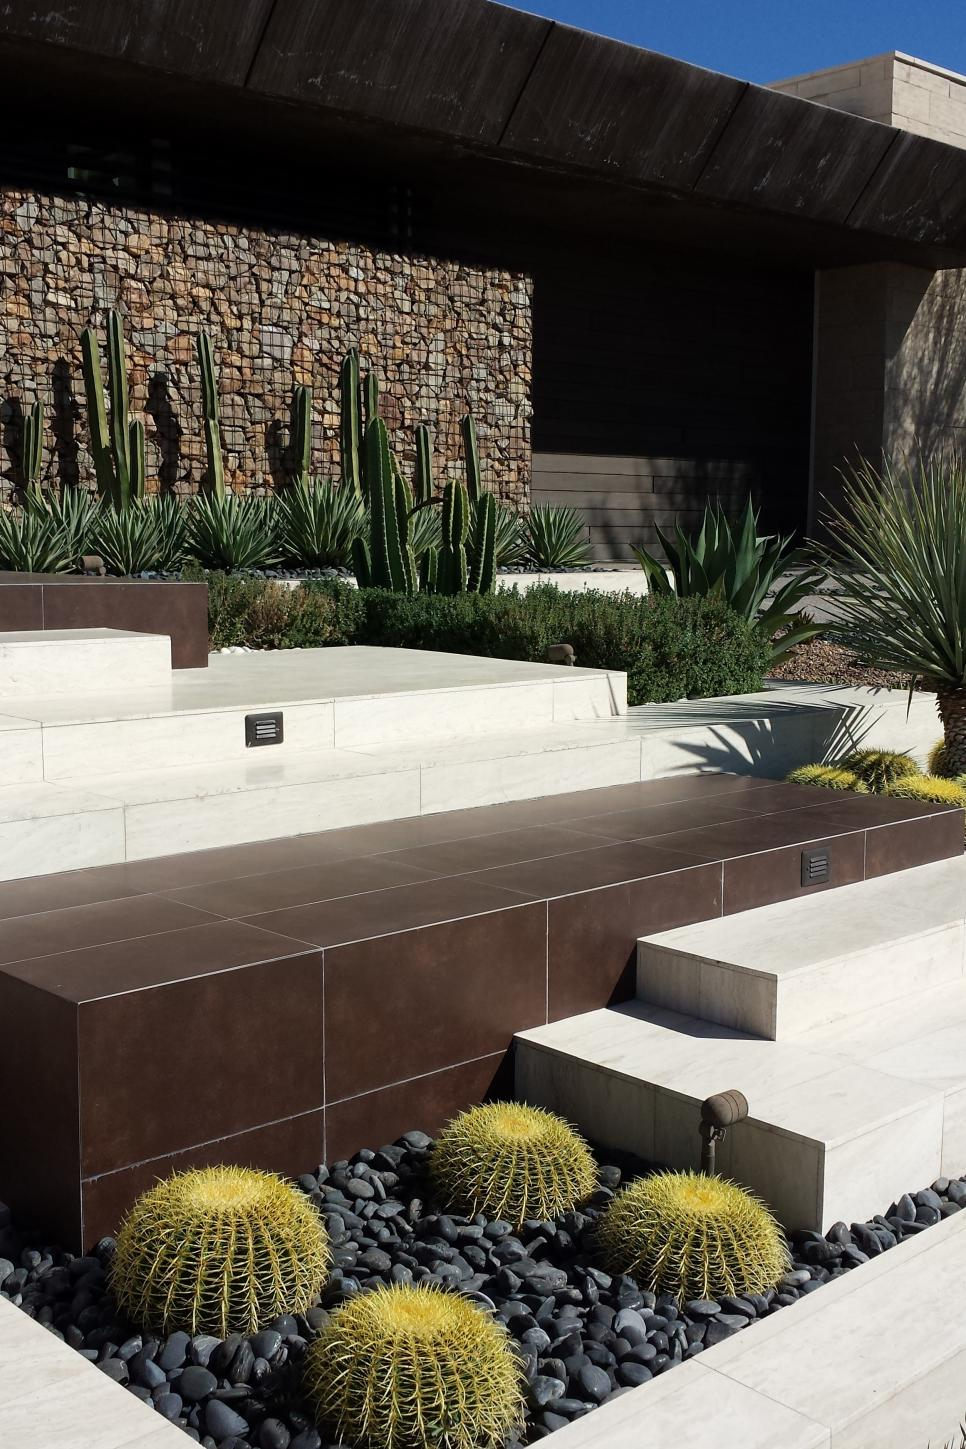 Eco friendly front yard landscaping sage design studios Modern desert landscaping ideas